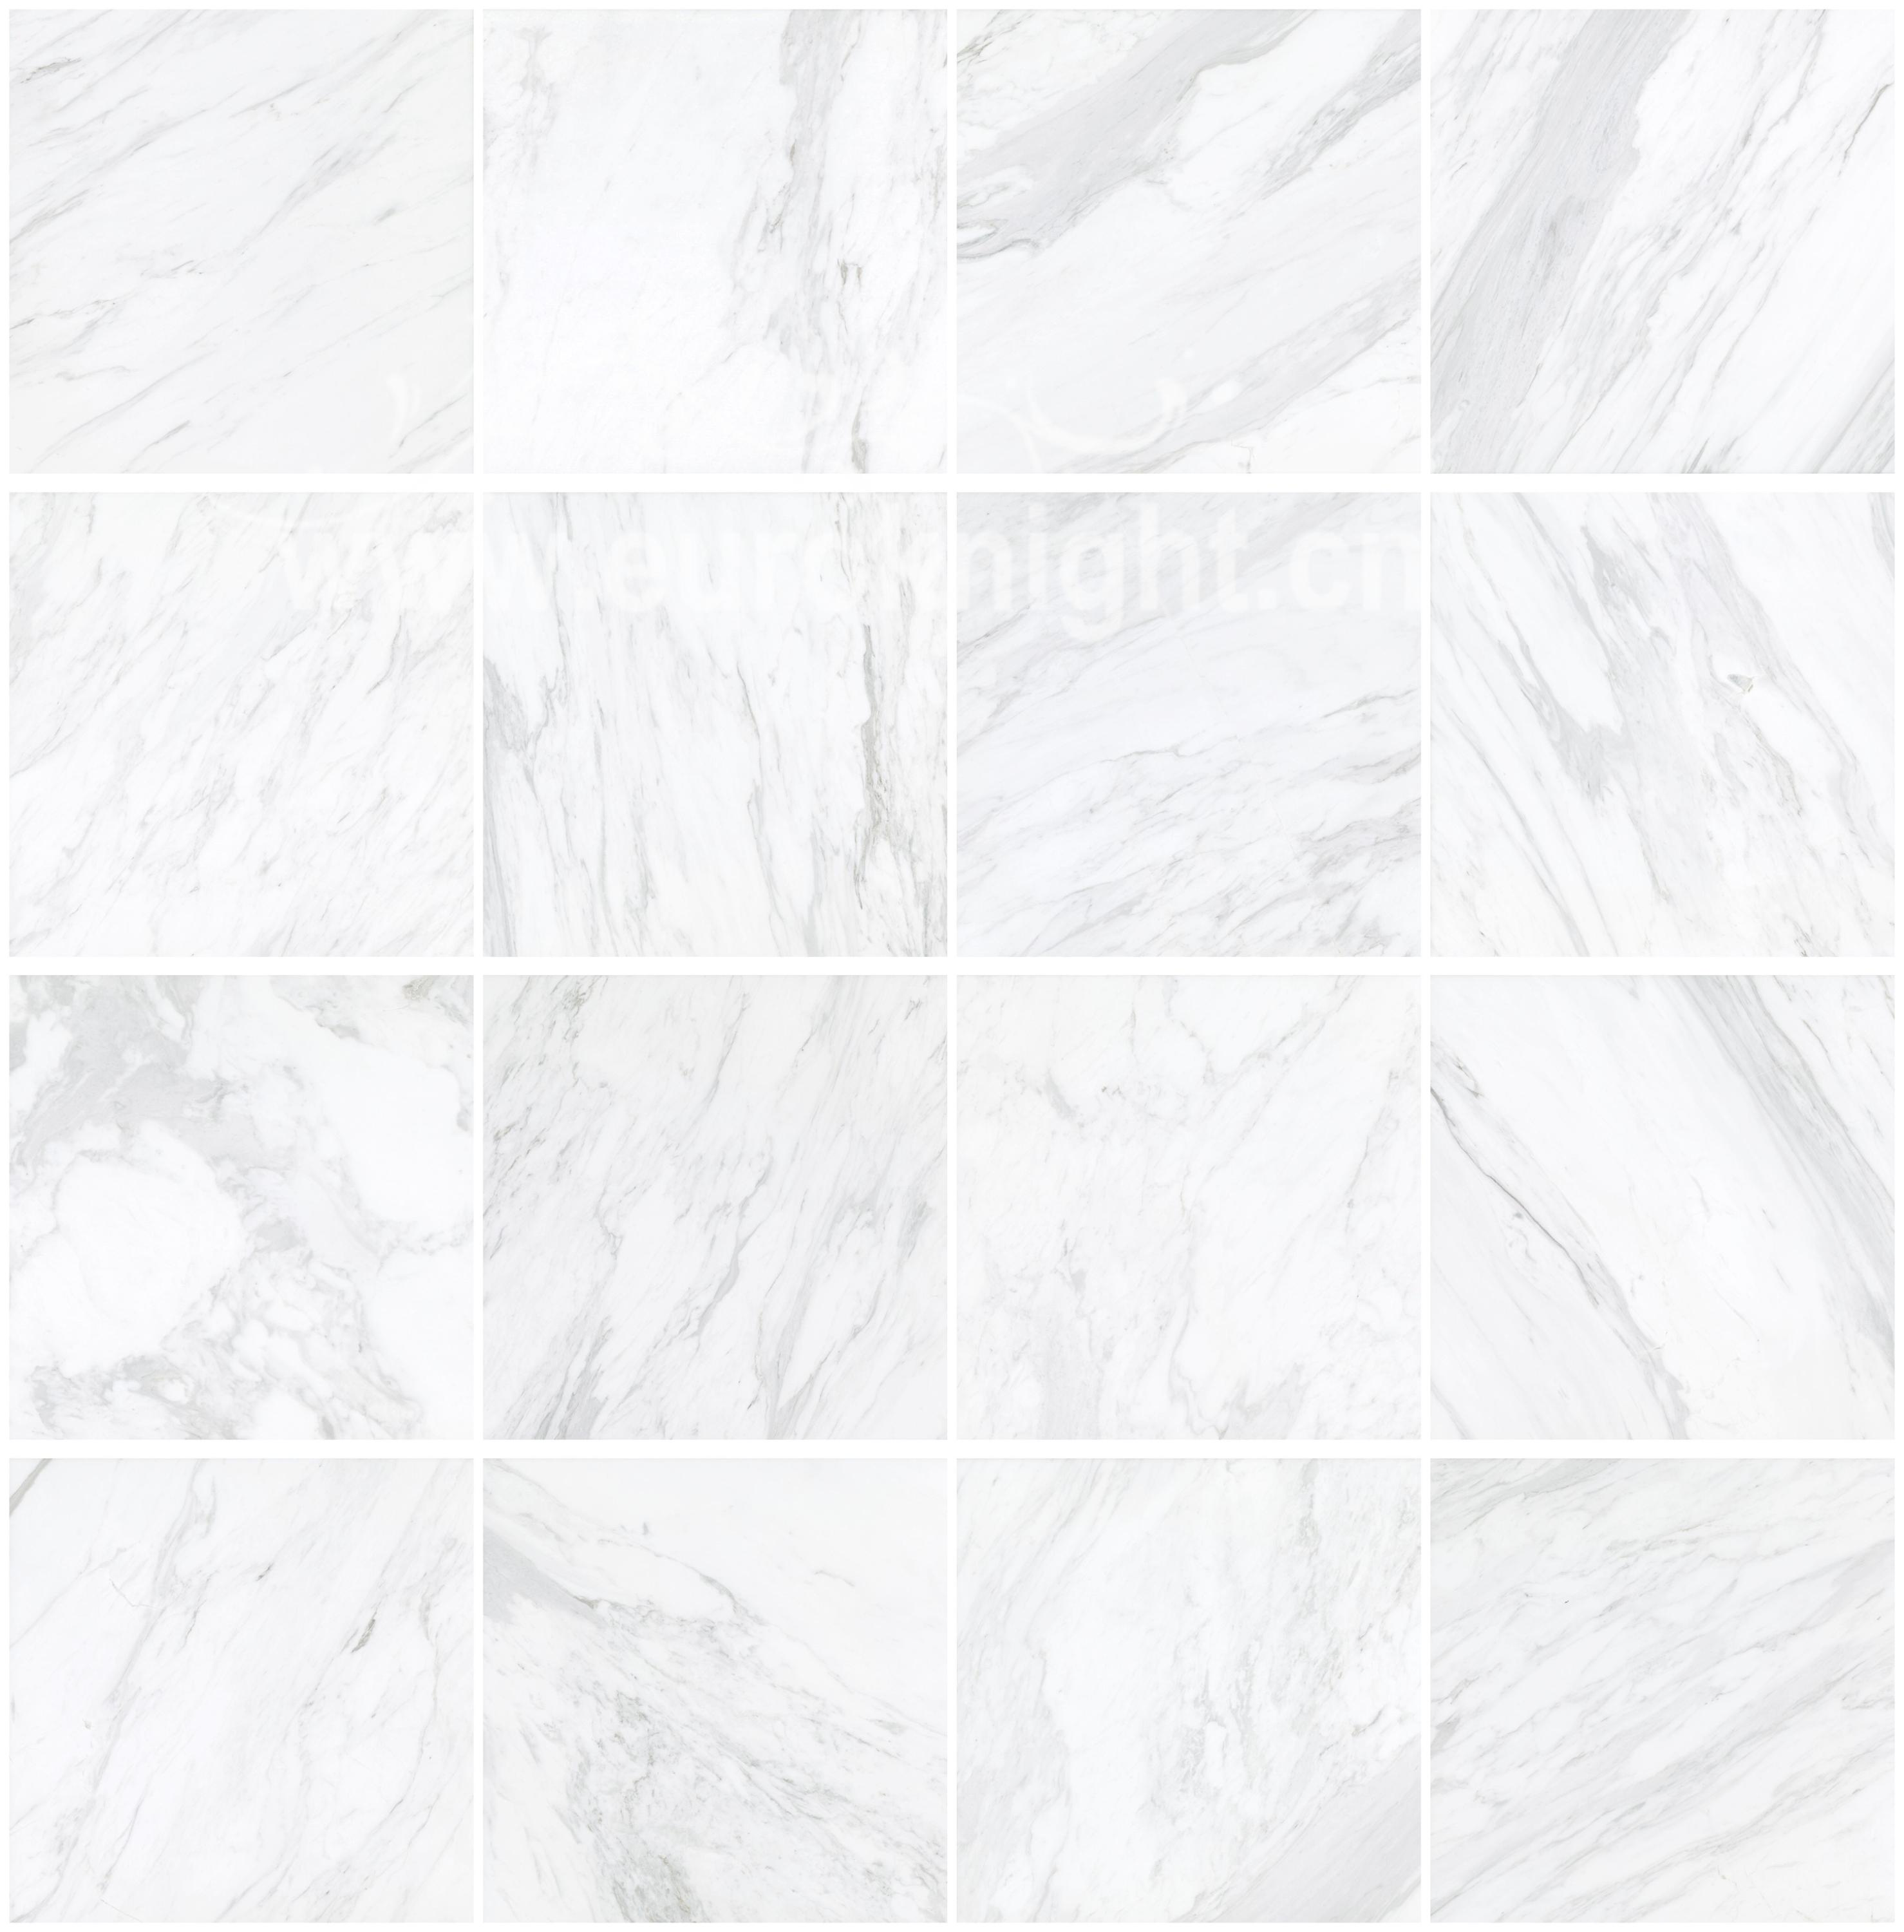 Foshan super white tile foshan super white tile suppliers and foshan super white tile foshan super white tile suppliers and manufacturers at alibaba doublecrazyfo Choice Image